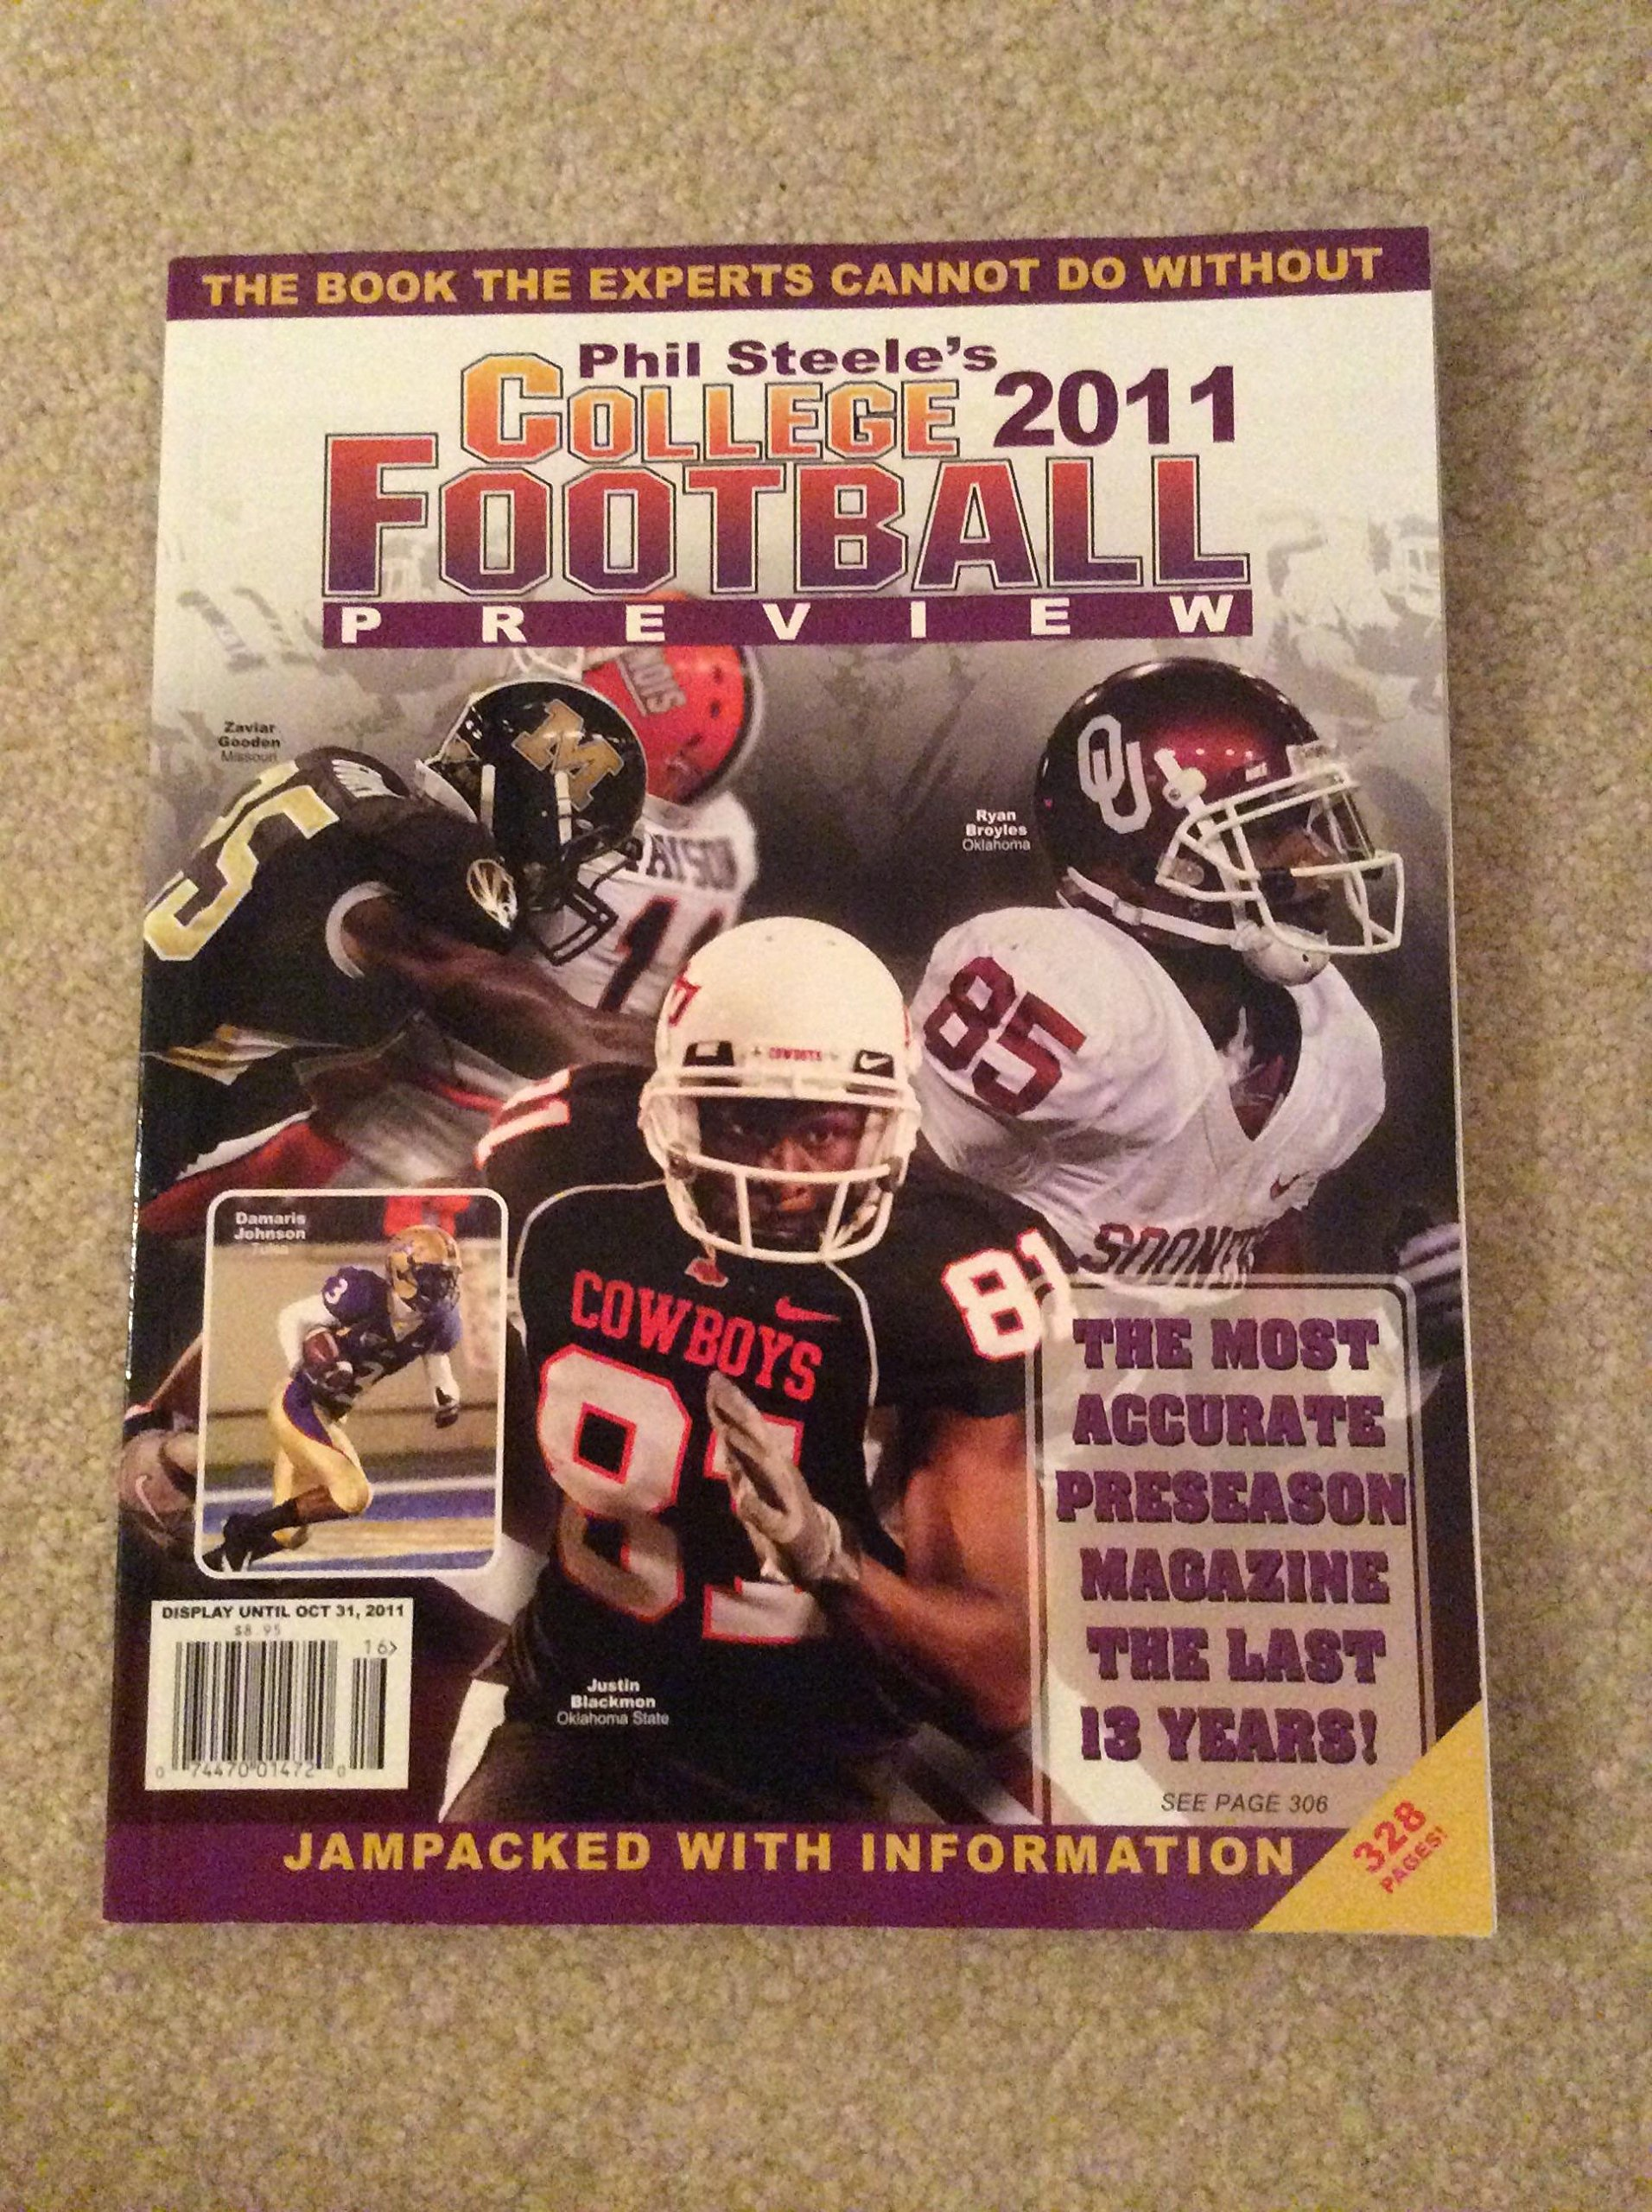 2011 PHIL STEELE'S COLLEGE FOOTBALL PREVIEW 2011 NEW 328 PAGES